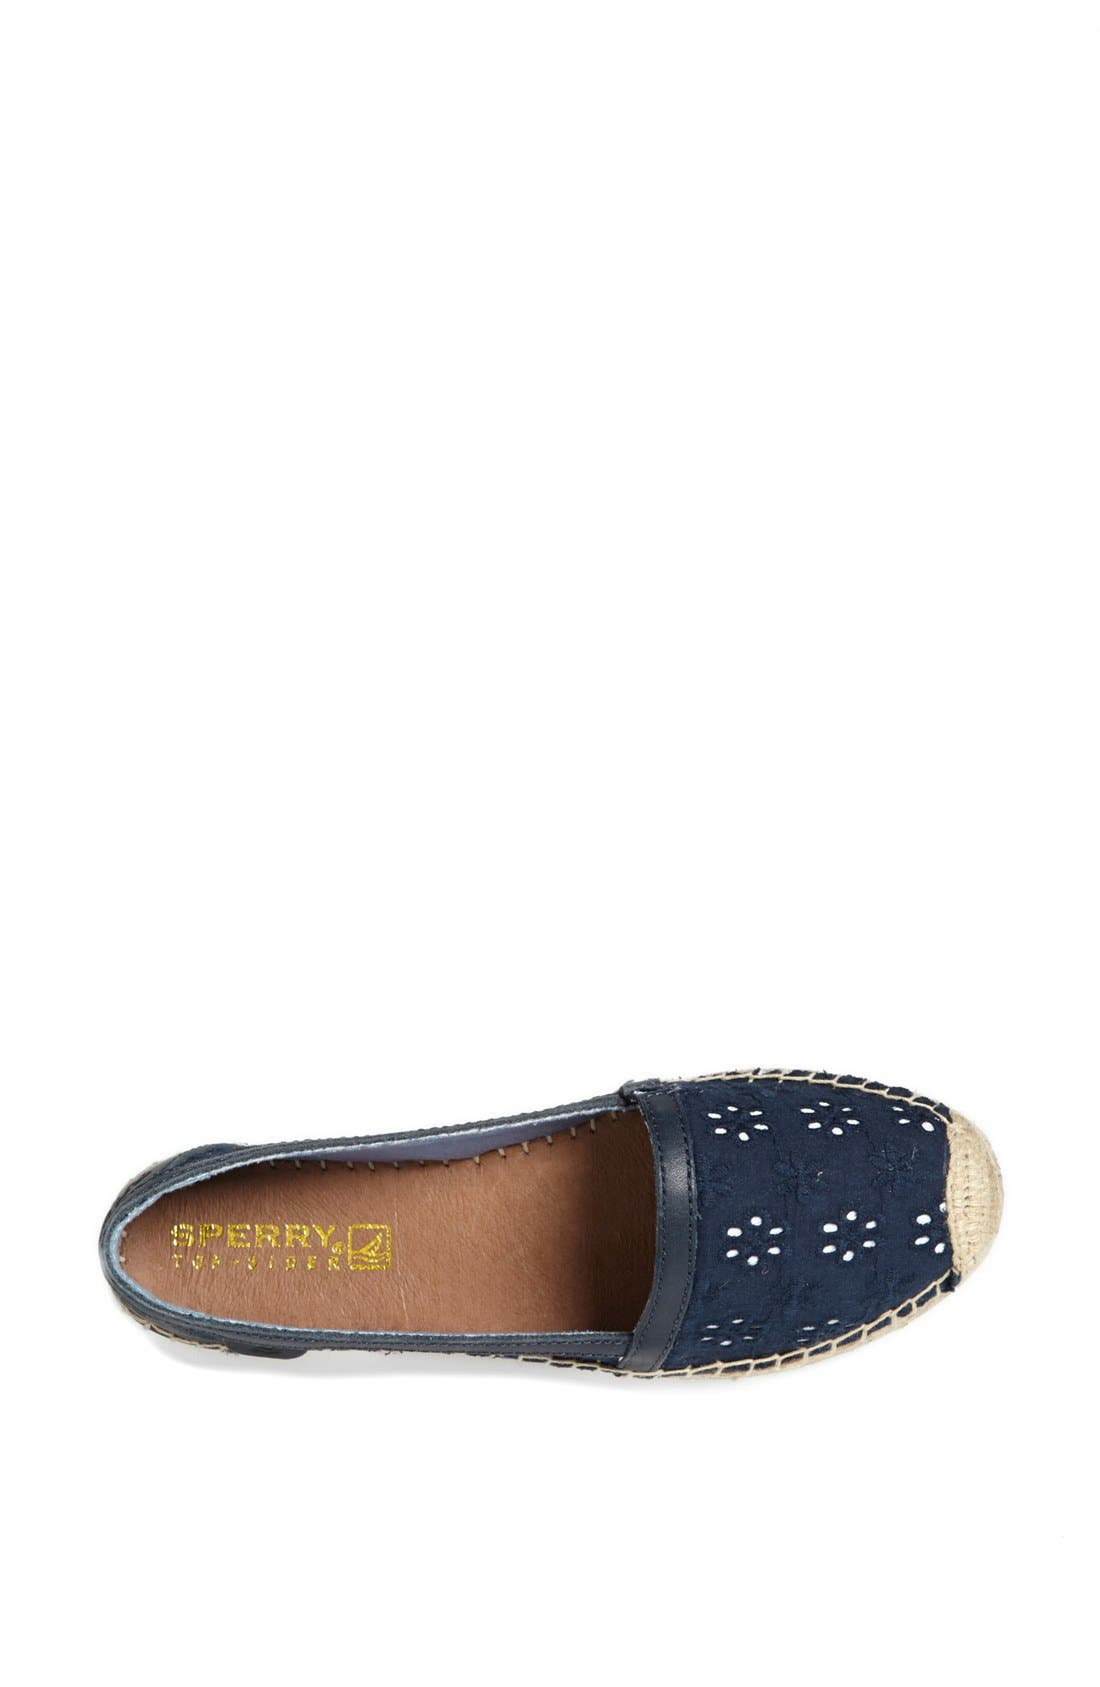 Alternate Image 2  - SPERRY DANICA FLAT